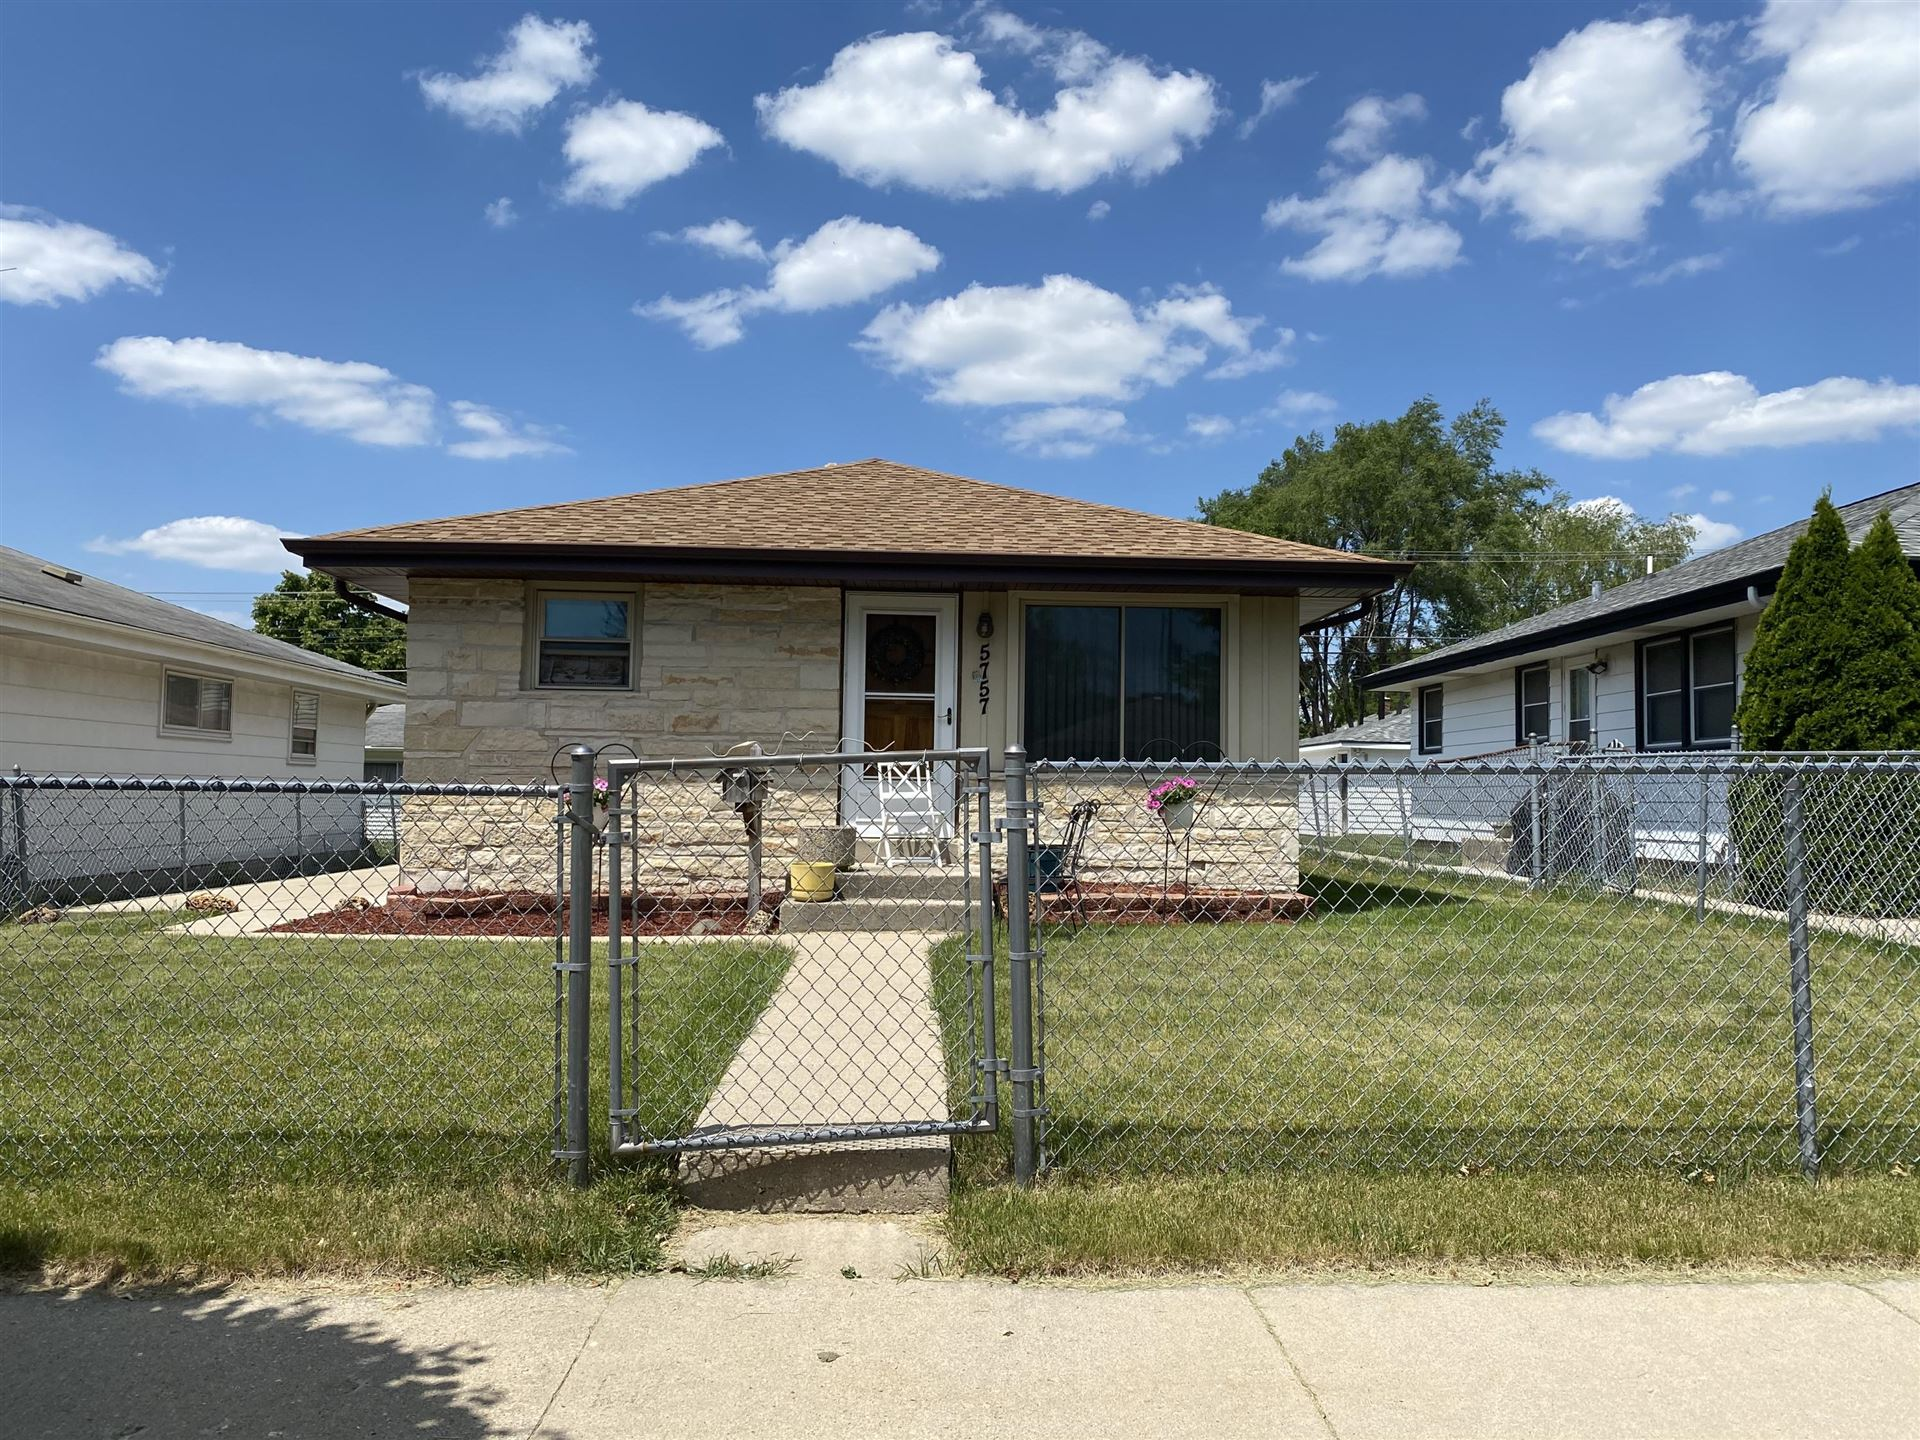 5757 N 96th St, Milwaukee, WI 53225 - #: 1711184